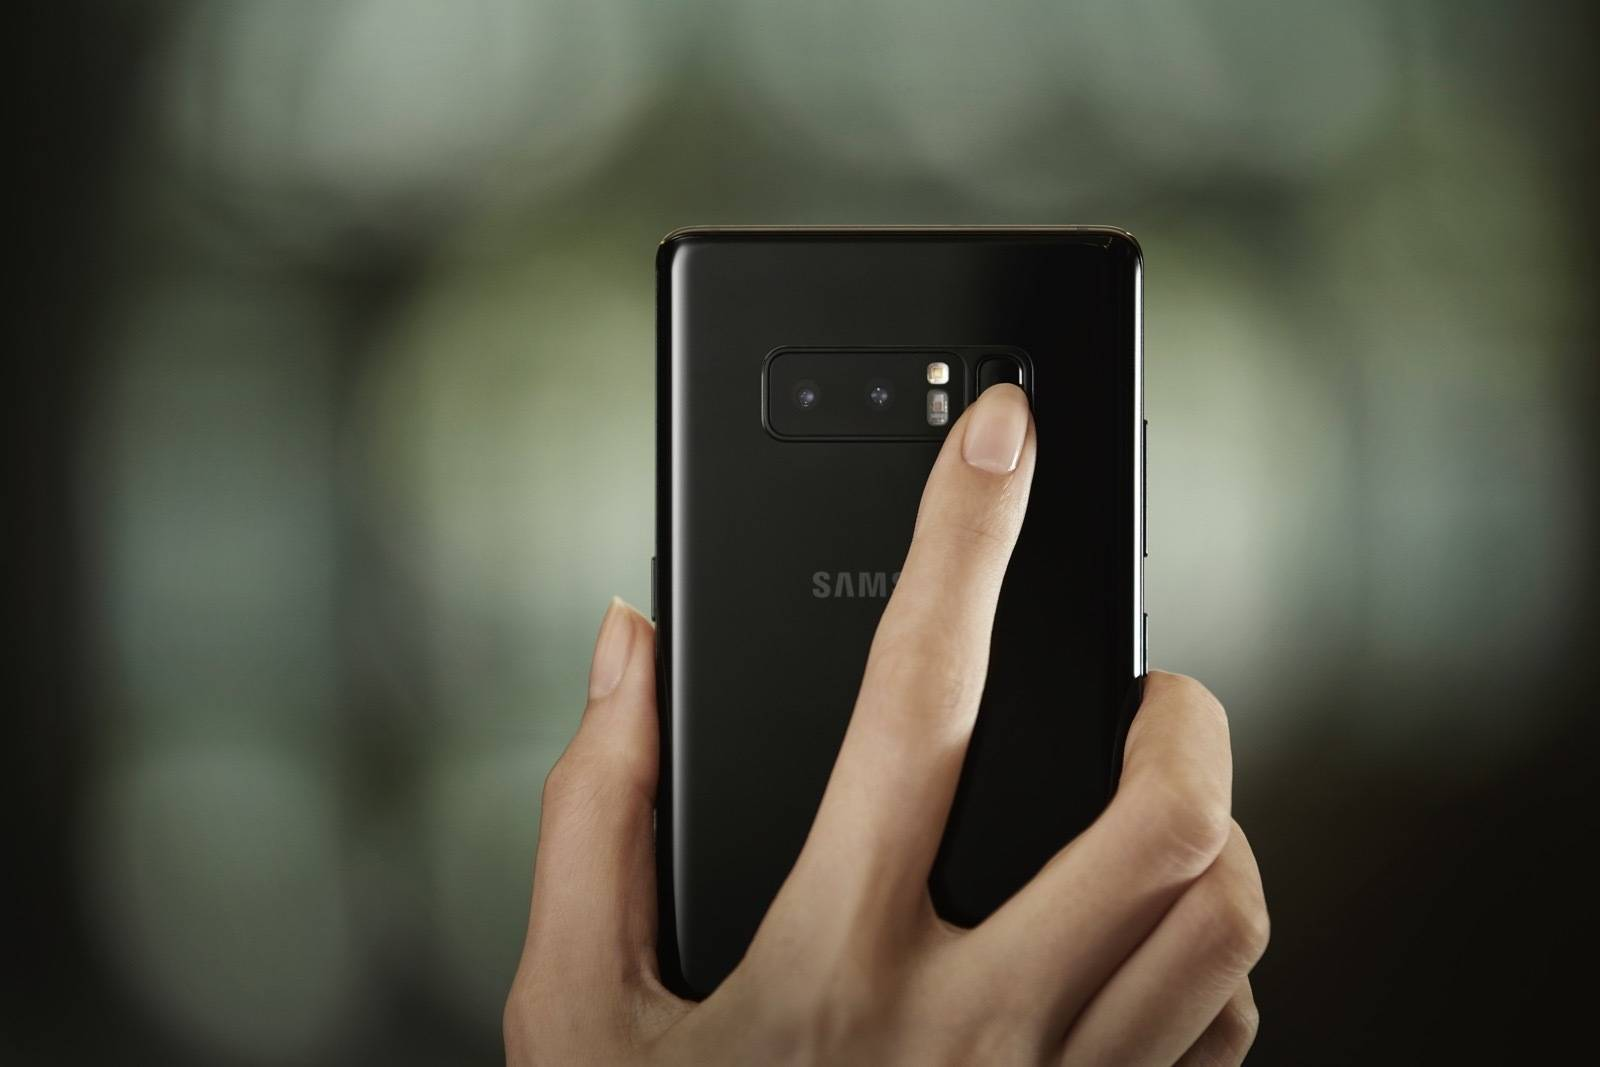 samsung galaxy Note 8 unboxing 4